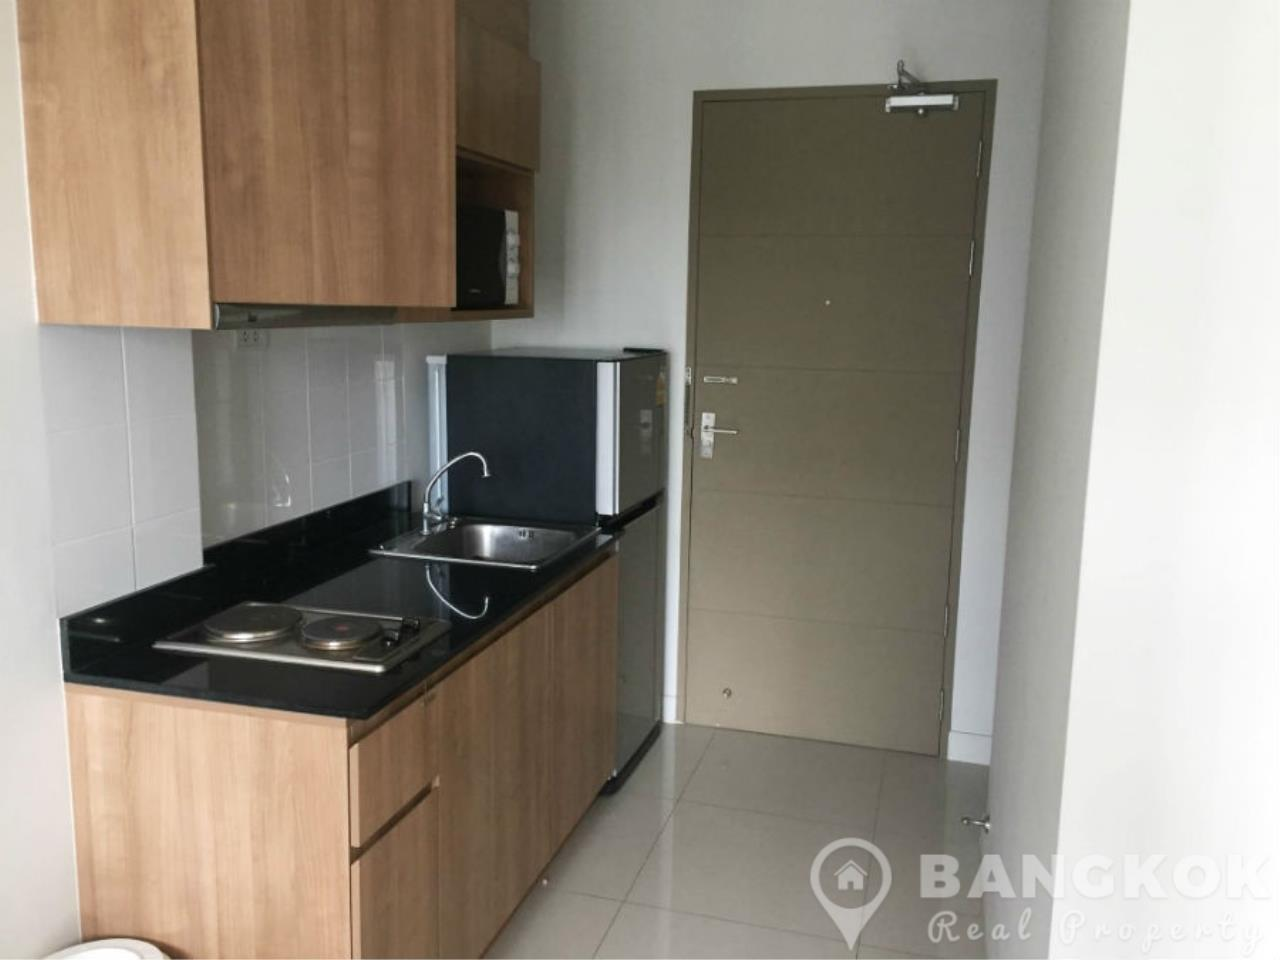 Bangkok Real Property Agency's IDEO Sathorn Taksin | Modern High Floor 1 Bed at BTS 2